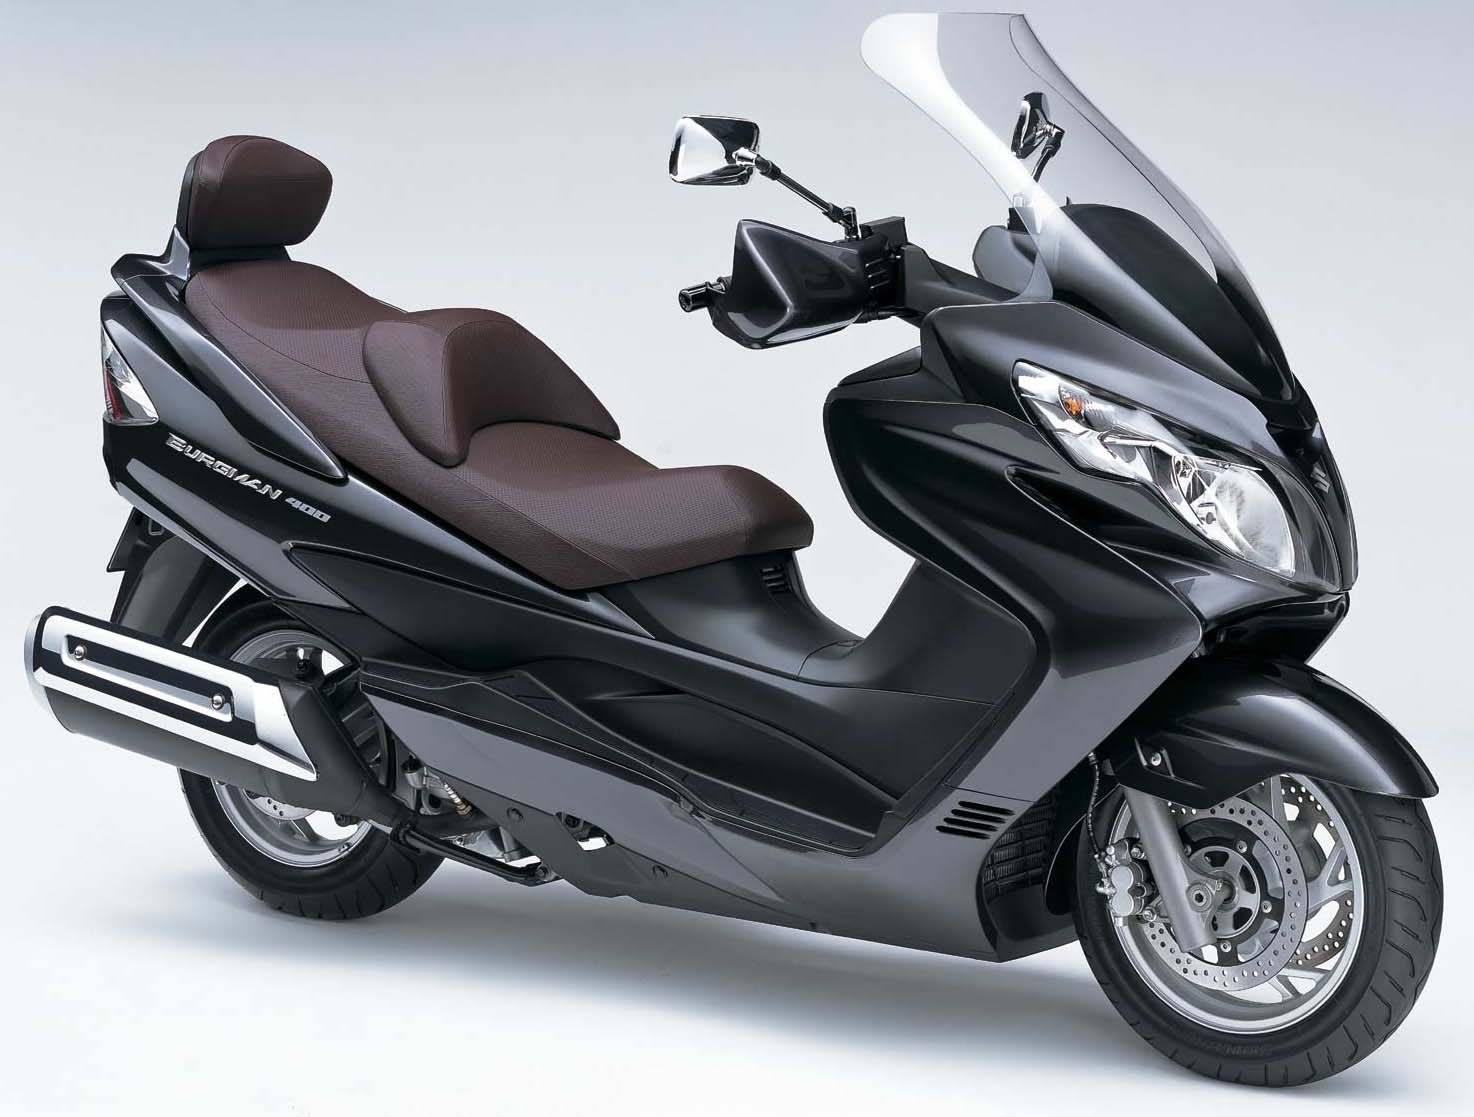 suzuki burgman 400 z executive abs avis et valuation du scooter suzuki burgman 400 z. Black Bedroom Furniture Sets. Home Design Ideas